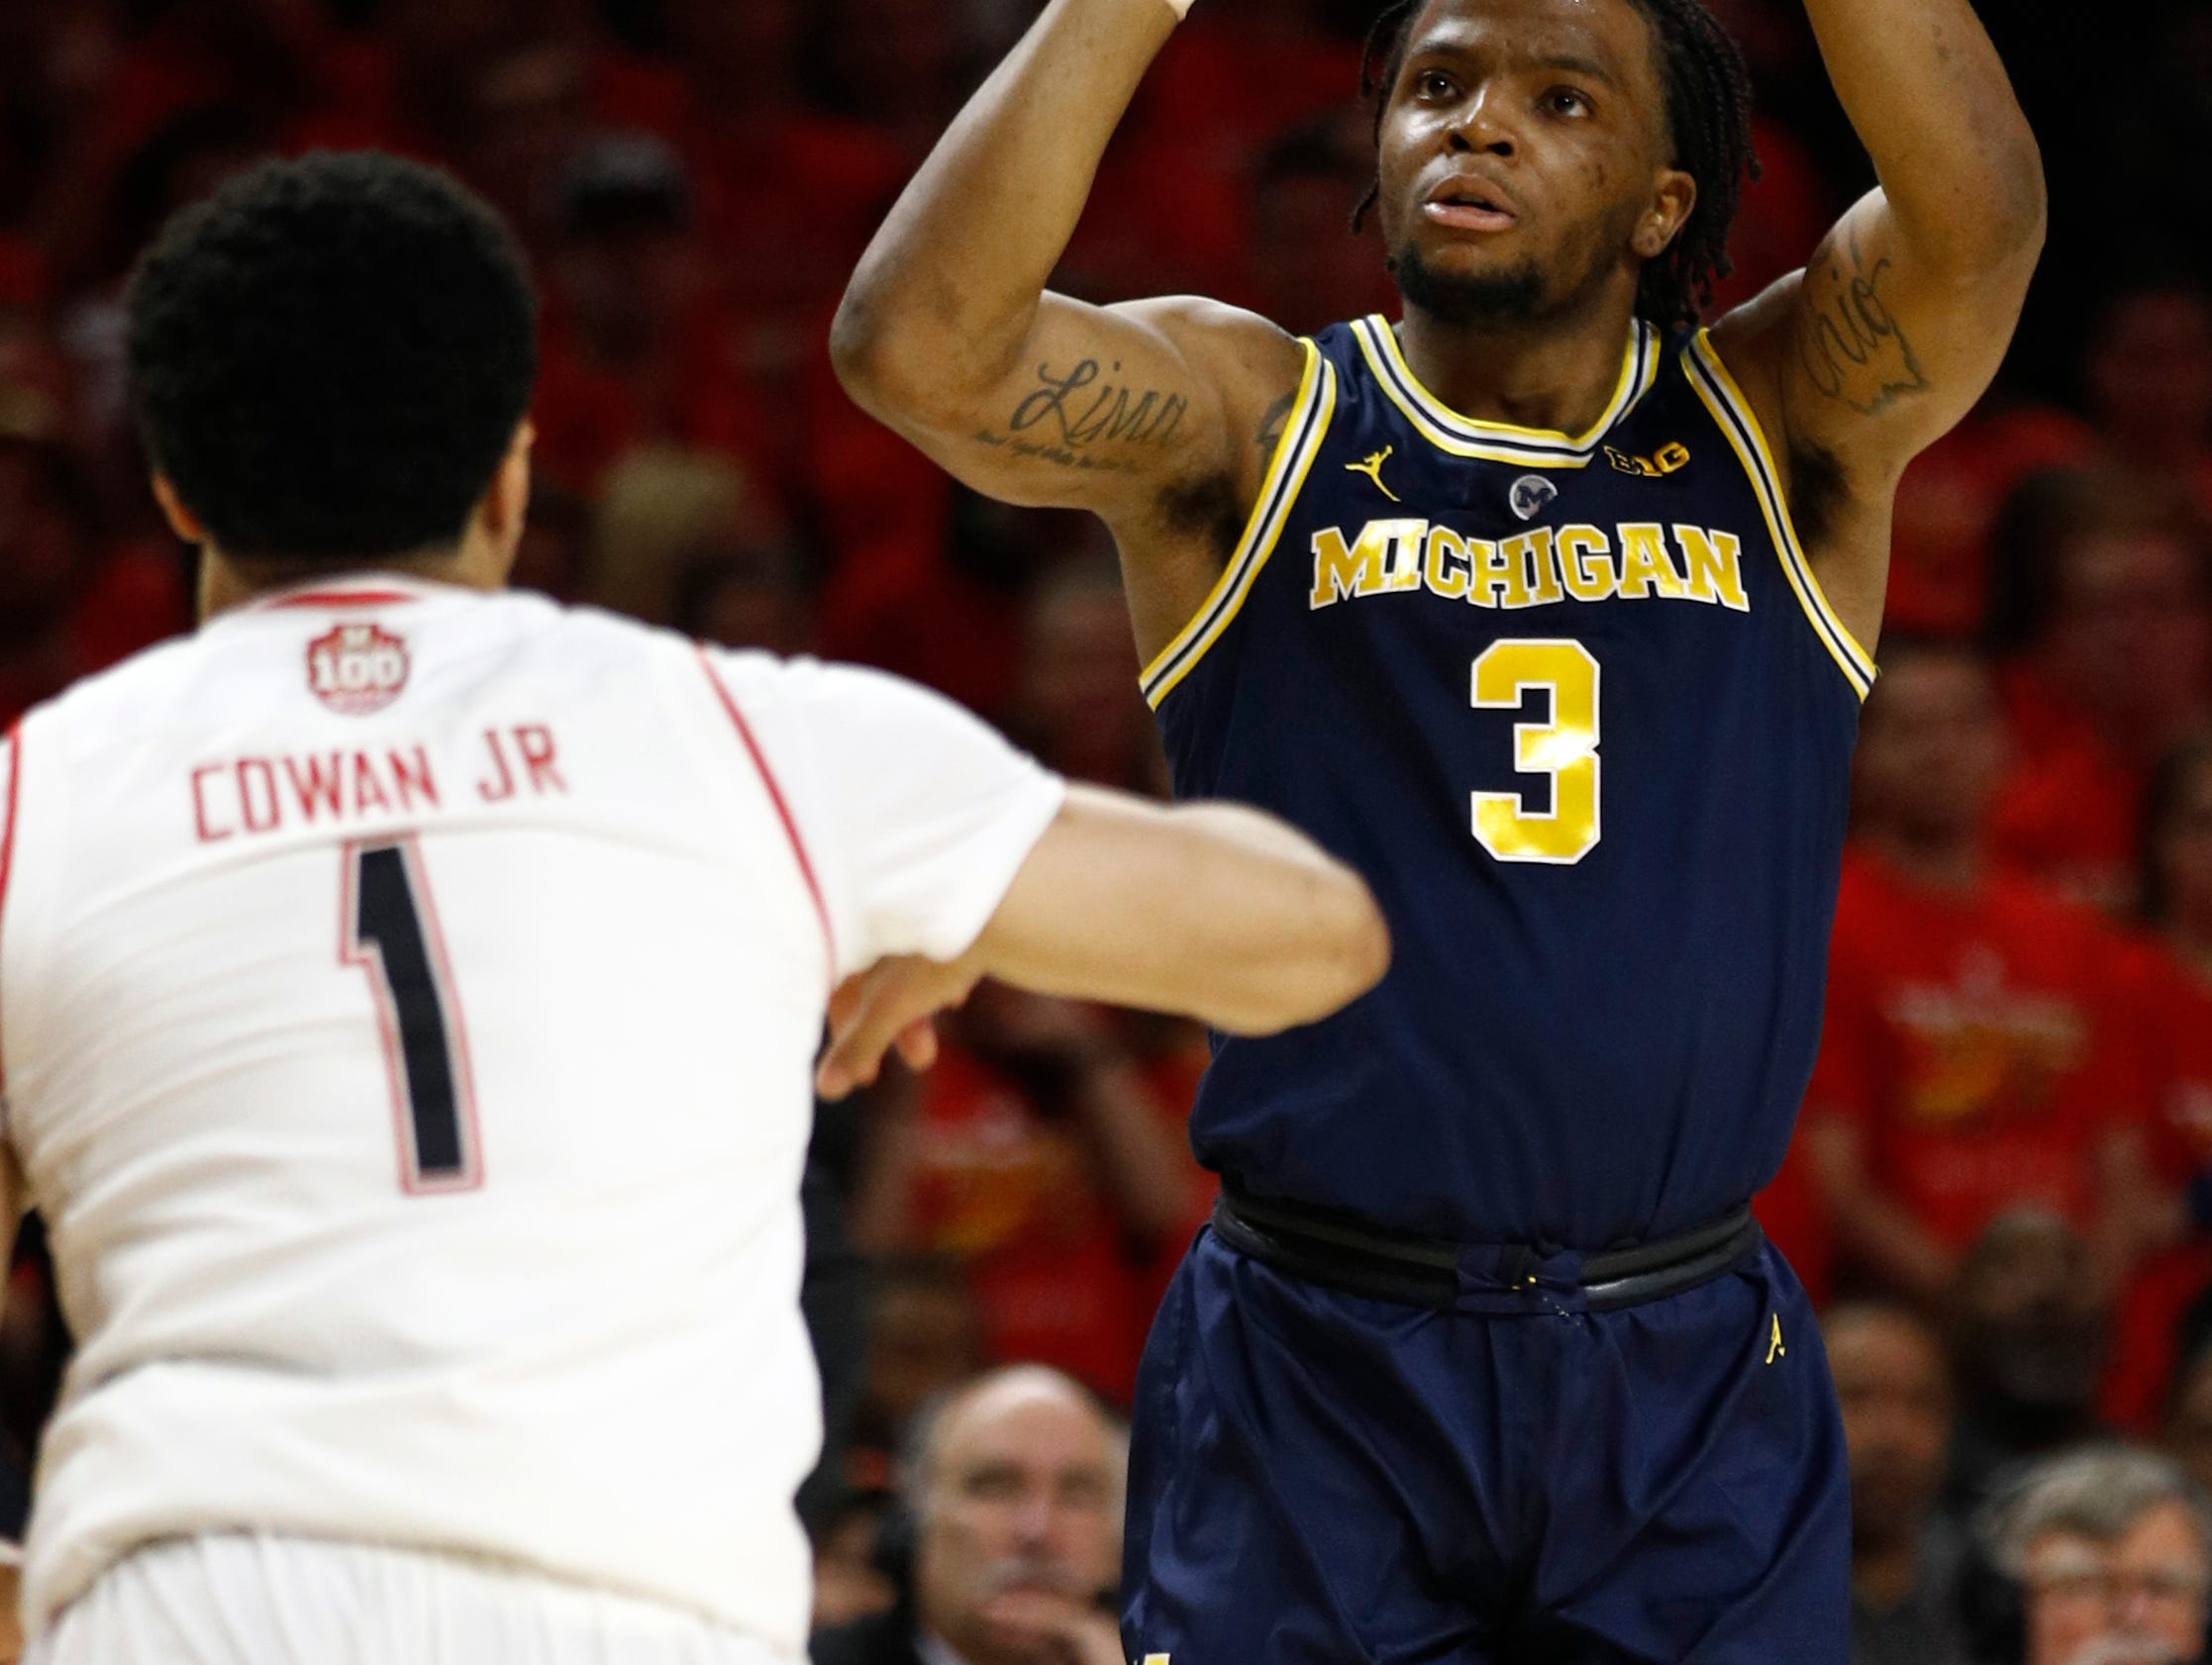 Michigan guard Zavier Simpson, right, shoots over Maryland guard Anthony Cowan Jr. in the first half.